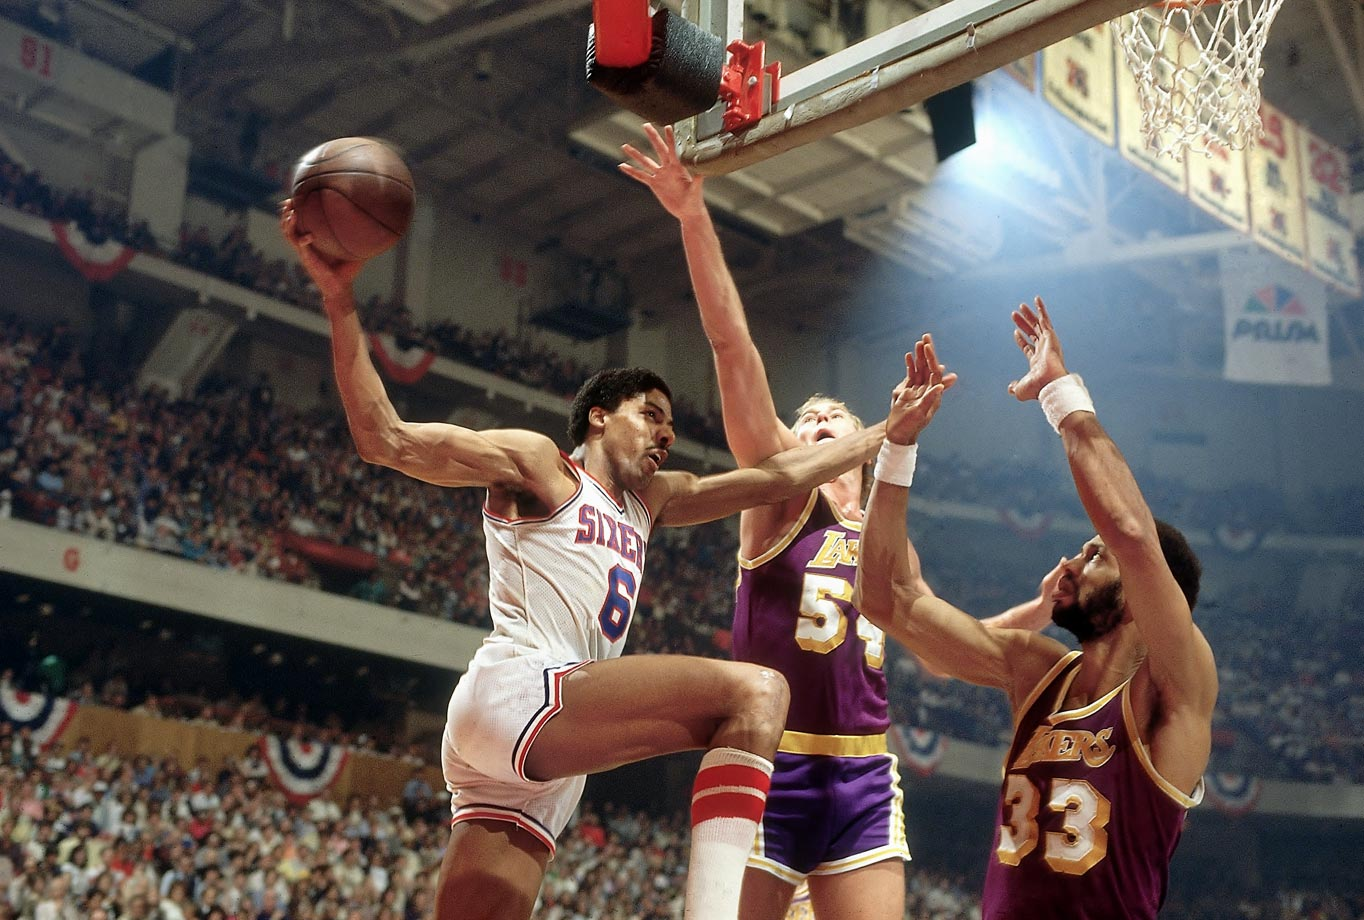 When the Doc came to the Philadelphia 76ers from the ABA in 1976, it marked the start of the NBA's renaissance. Yes, it needed Magic and Bird thee years later for the real kick-start, but the original Prince of Air brought class and professionalism to a league that desperately needed it. And he could play a little.